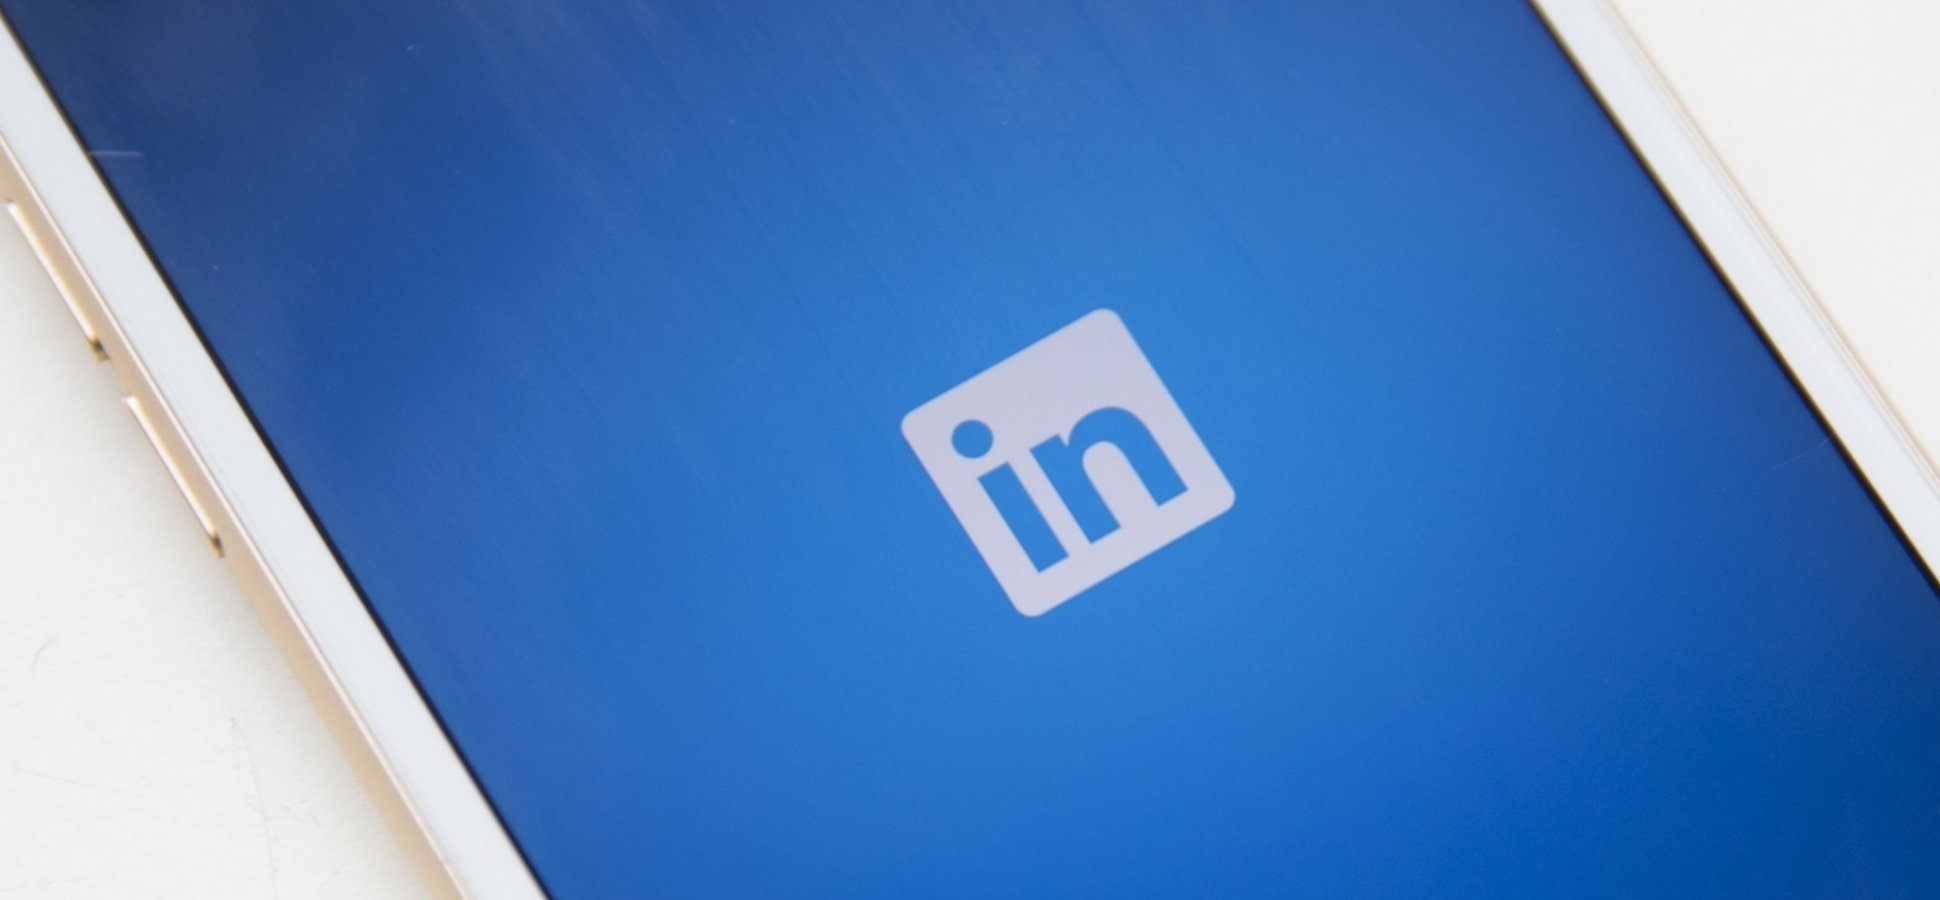 LinkedIn Just Rolled Out Live Video. Here's Why All Entrepreneurs Should Care